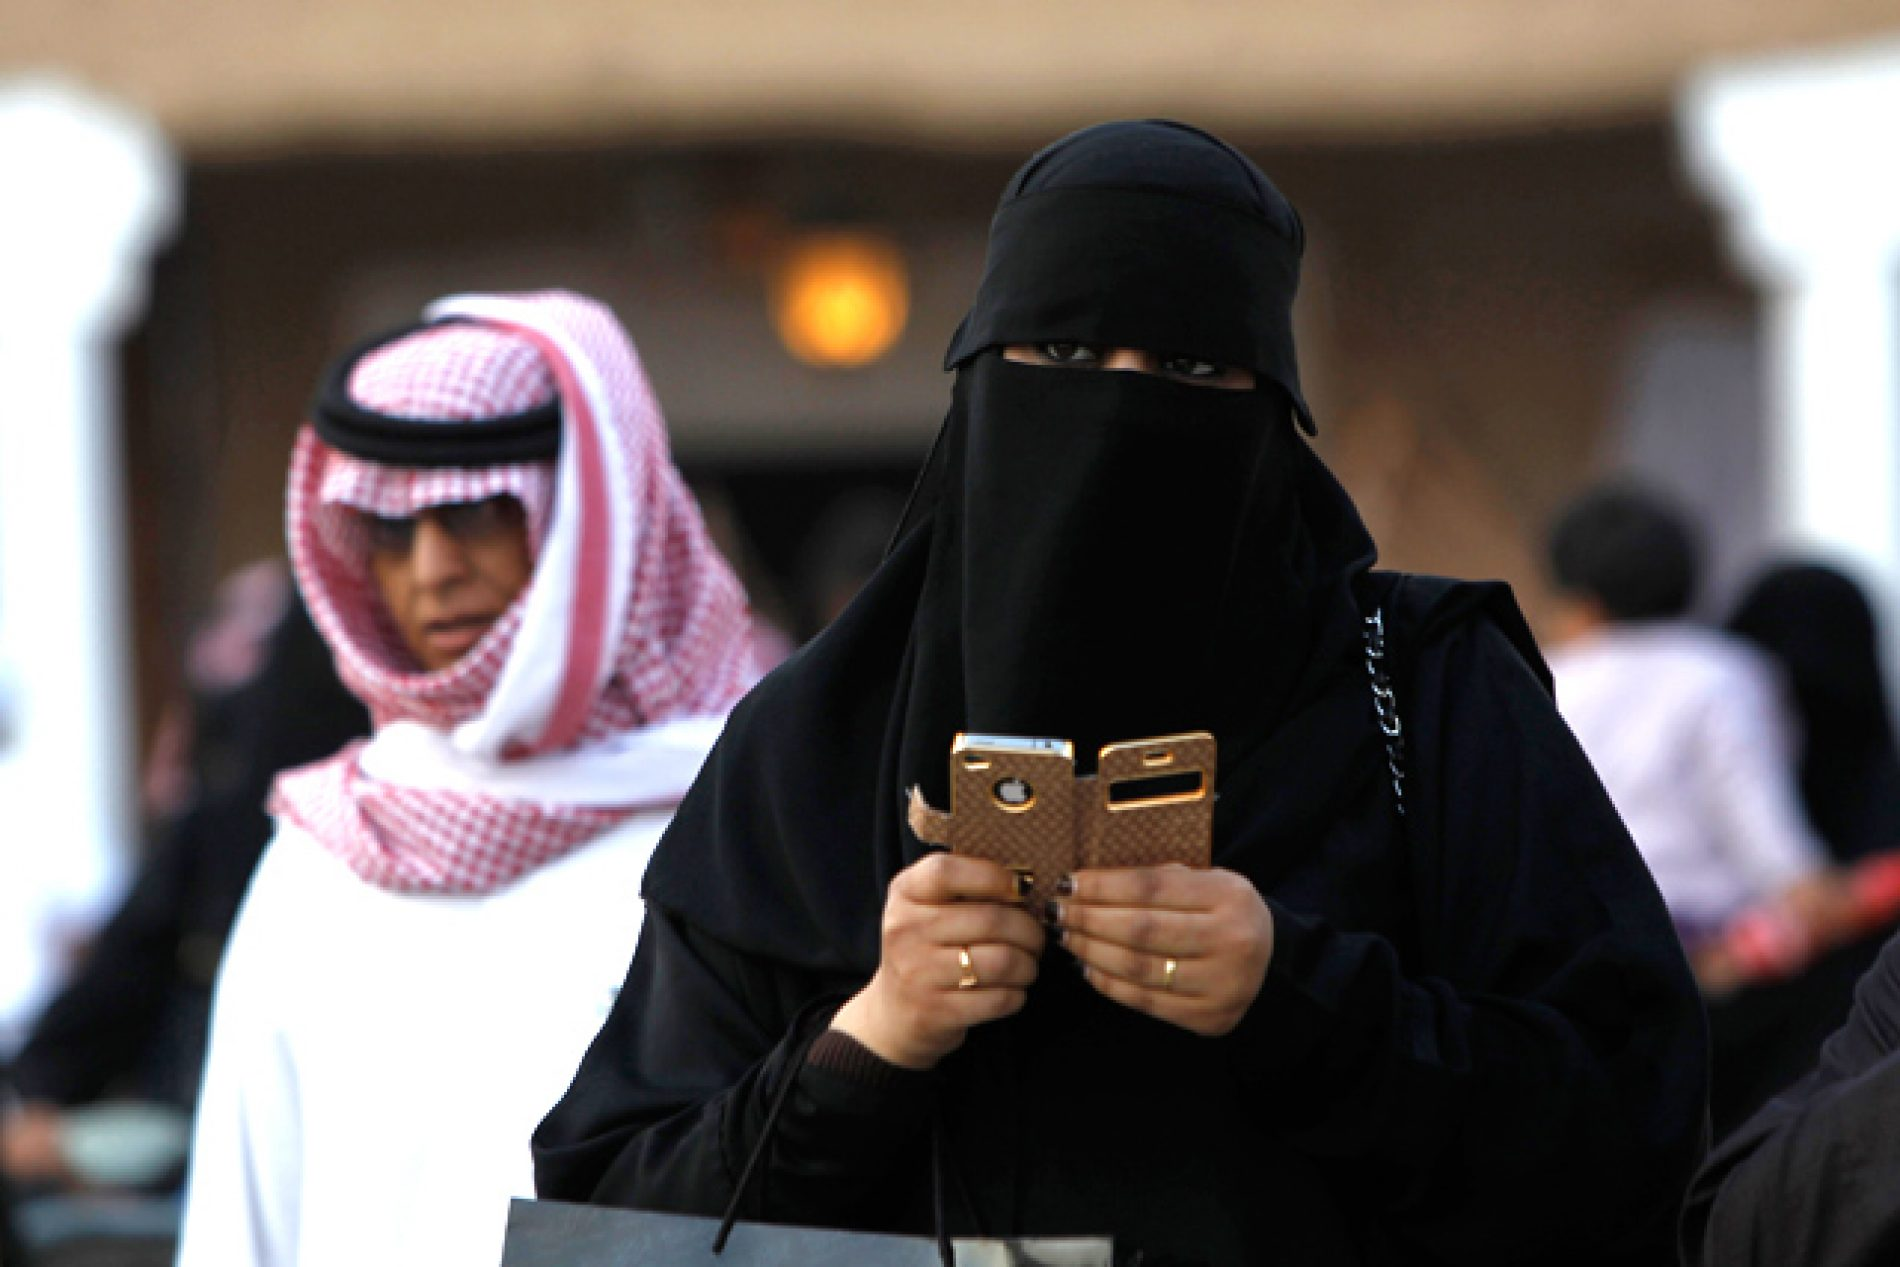 Feminism, Homosexuality and Atheism Classified as Extremist Elements in Saudi Arabia